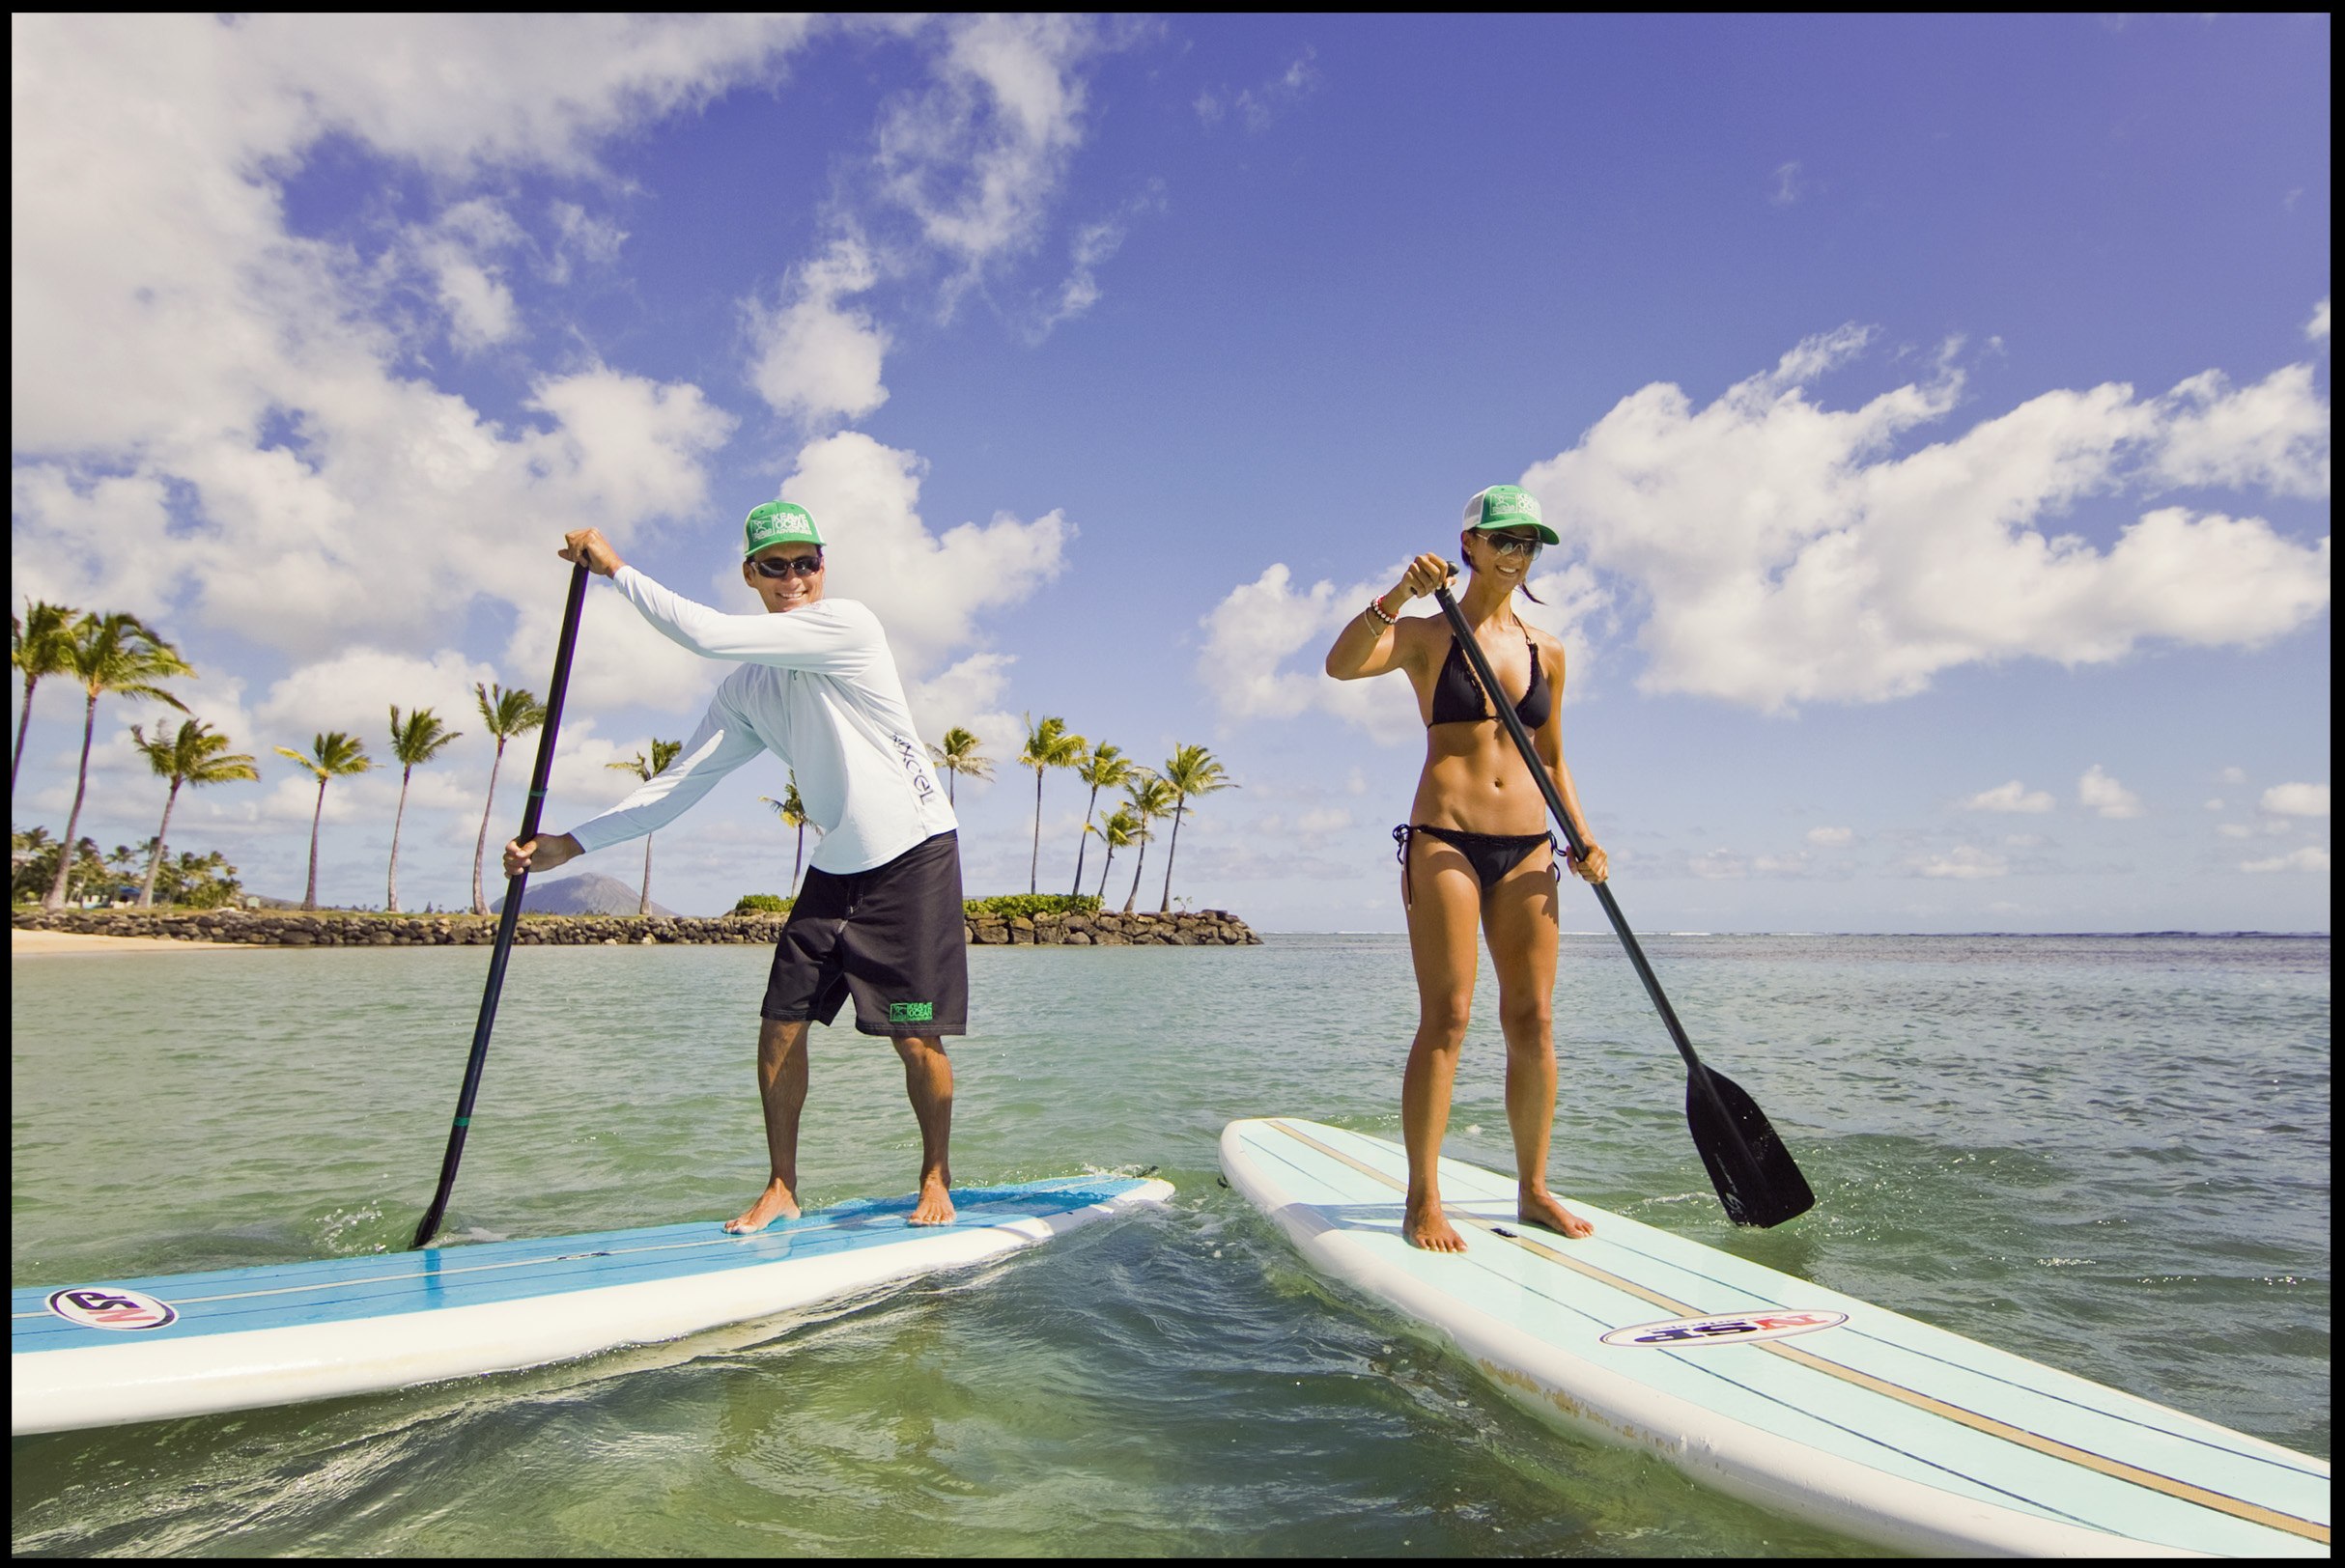 Paddleboard instructor, Makani Christensen, left, gives a lesson to Bianca Gross at the Kahala Resort in Honolulu. Photo for The New York Times.